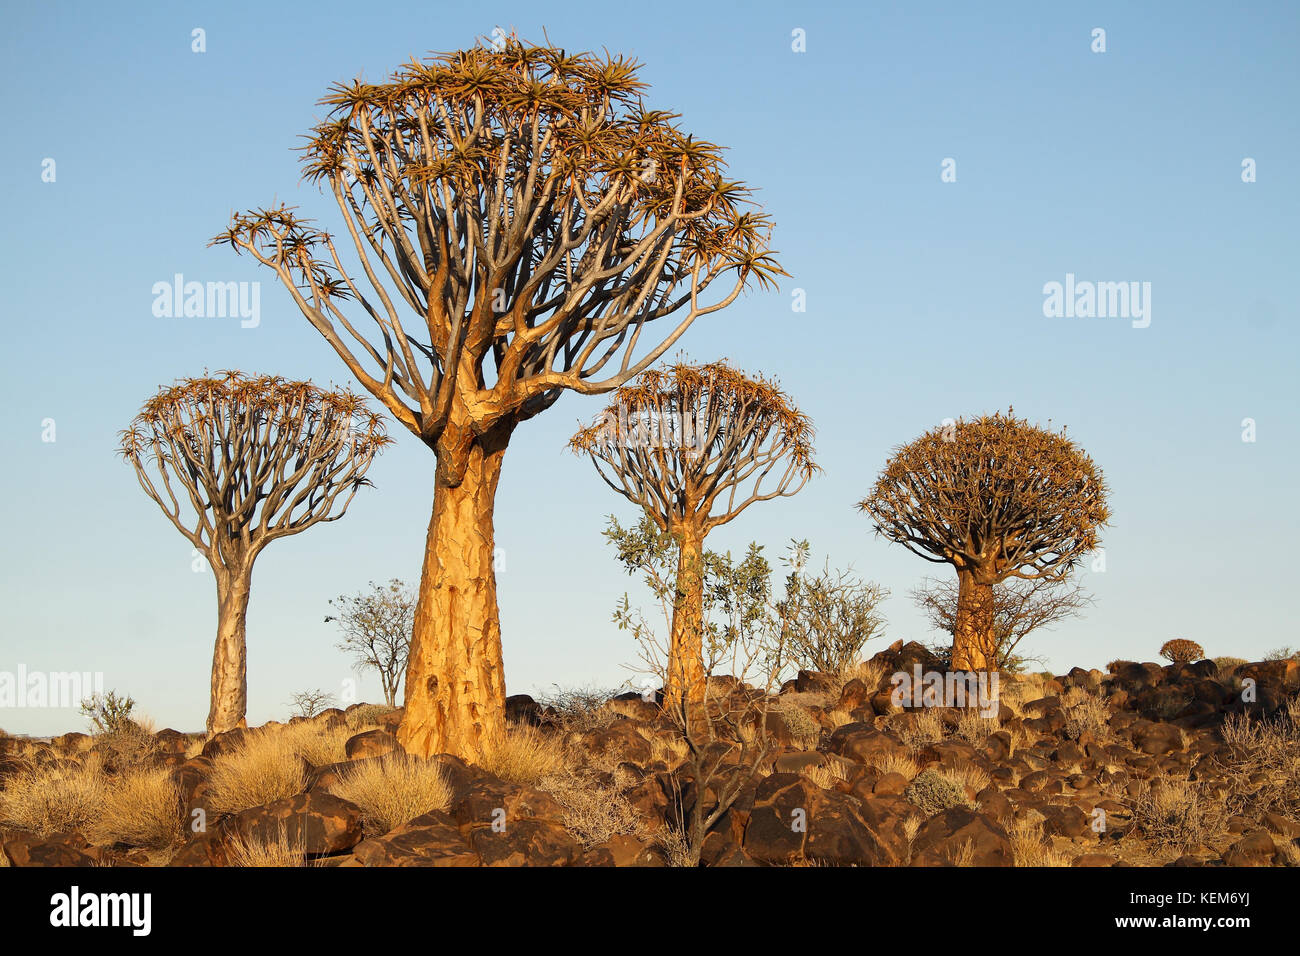 Quiver trees (Aloe dichotoma) in the Quiver Tree Forest, Namibia. Stock Photo